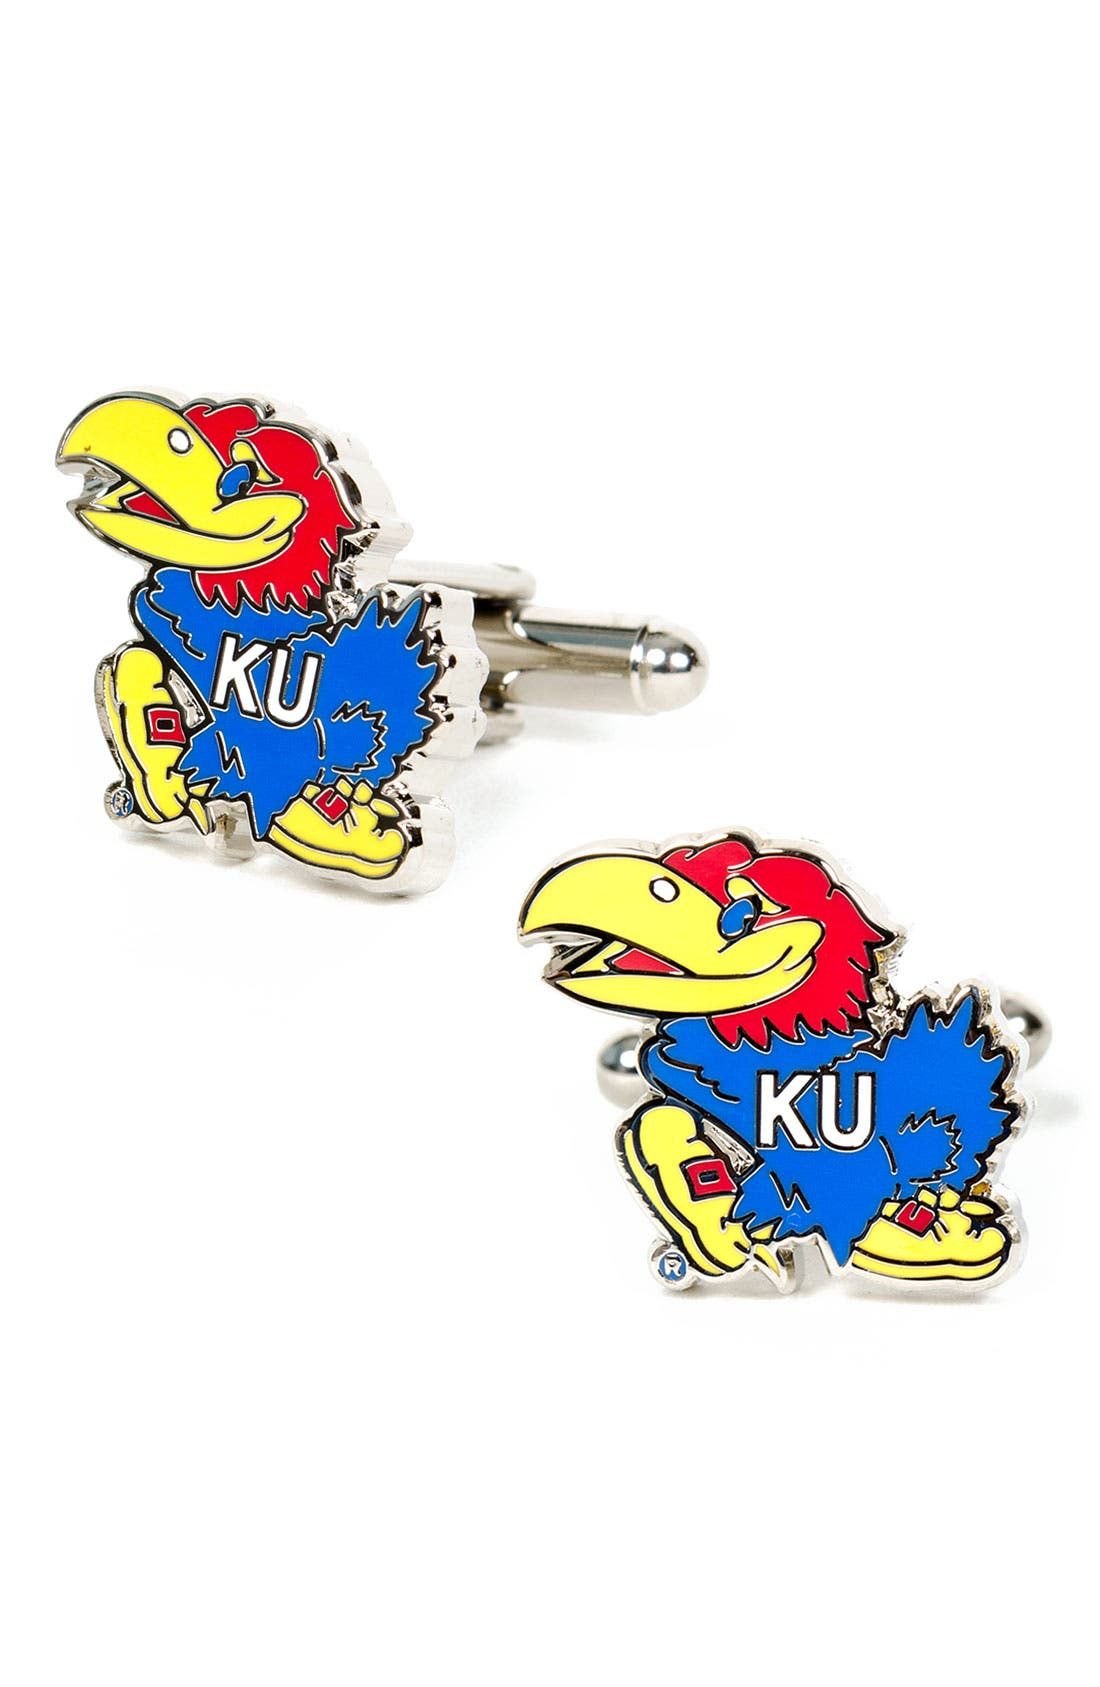 'Kansas Jayhawks' Cuff Links,                             Main thumbnail 1, color,                             400